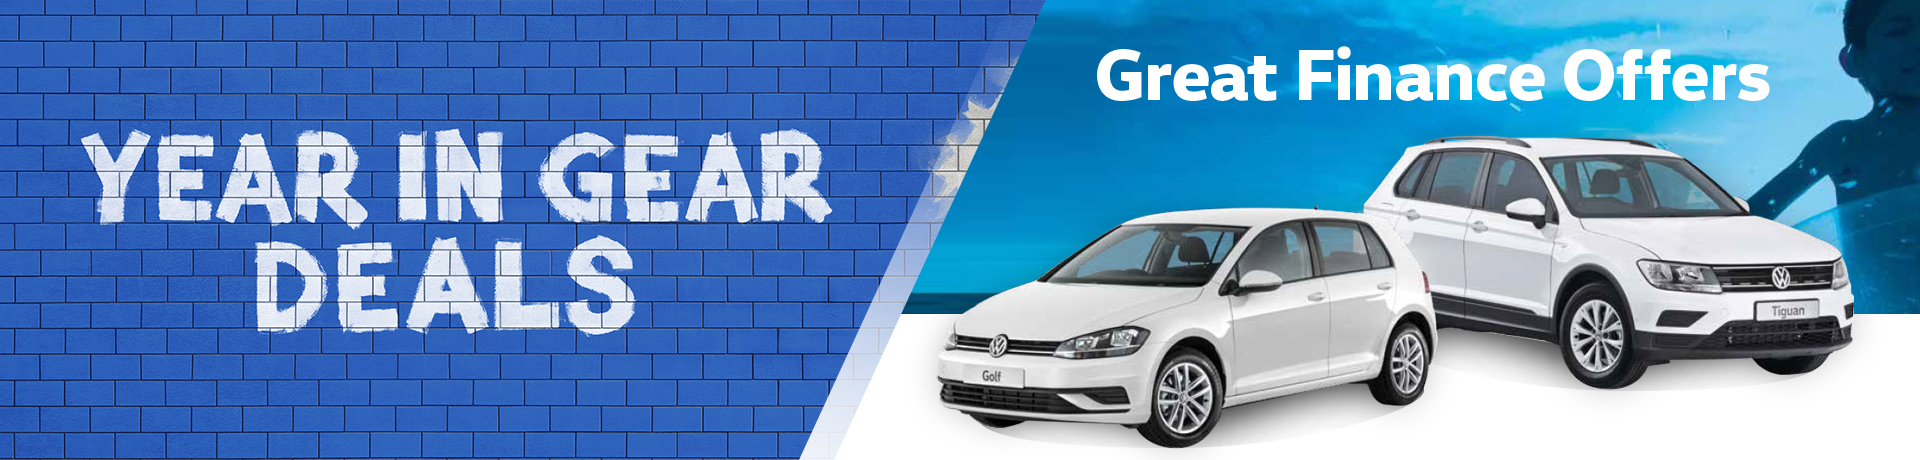 Volkwagen - Year in Gear Deals / Great Finance Offers